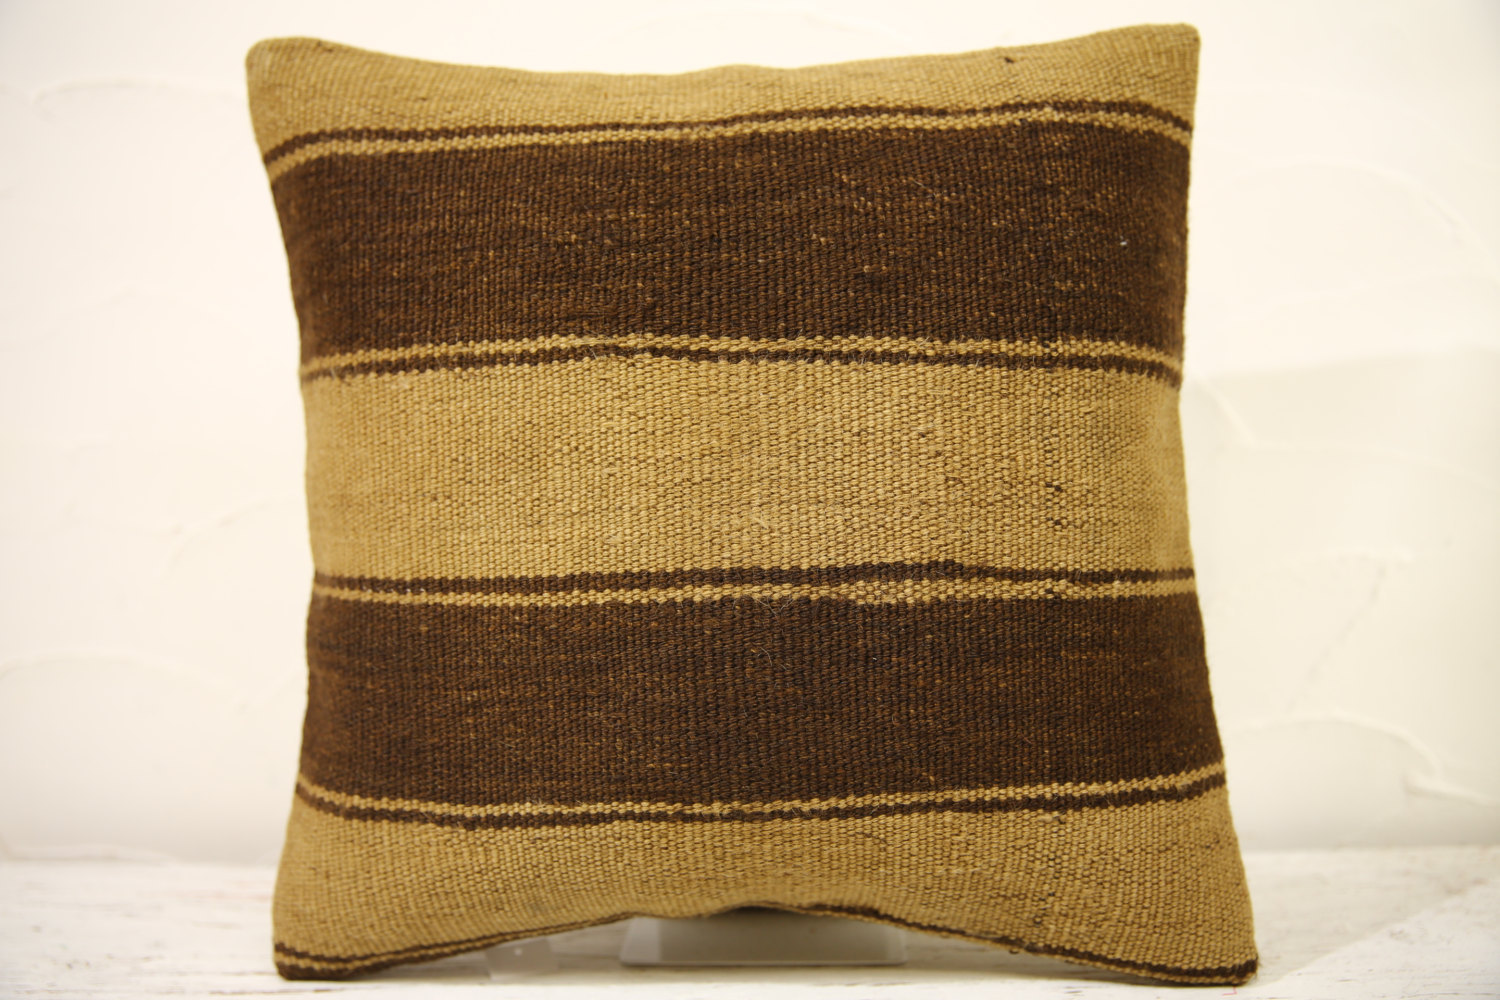 Kilim Pillows | 16x16 | Decorative Pillows | 854 | Accent Pillows , turkish pill